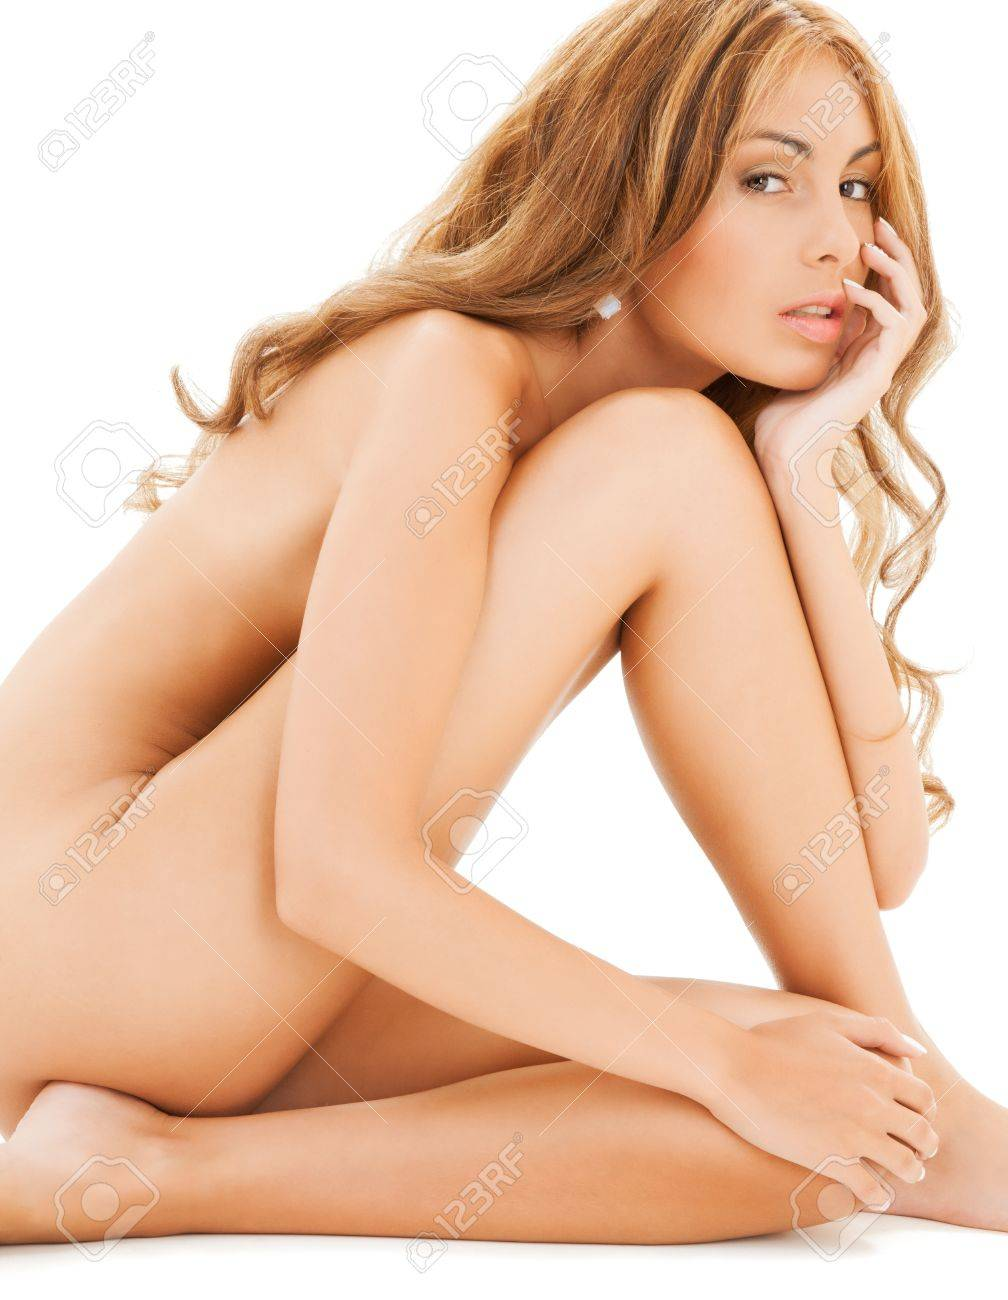 picture of attractive naked woman with long hair sitting on the floor Stock Photo - 20859693